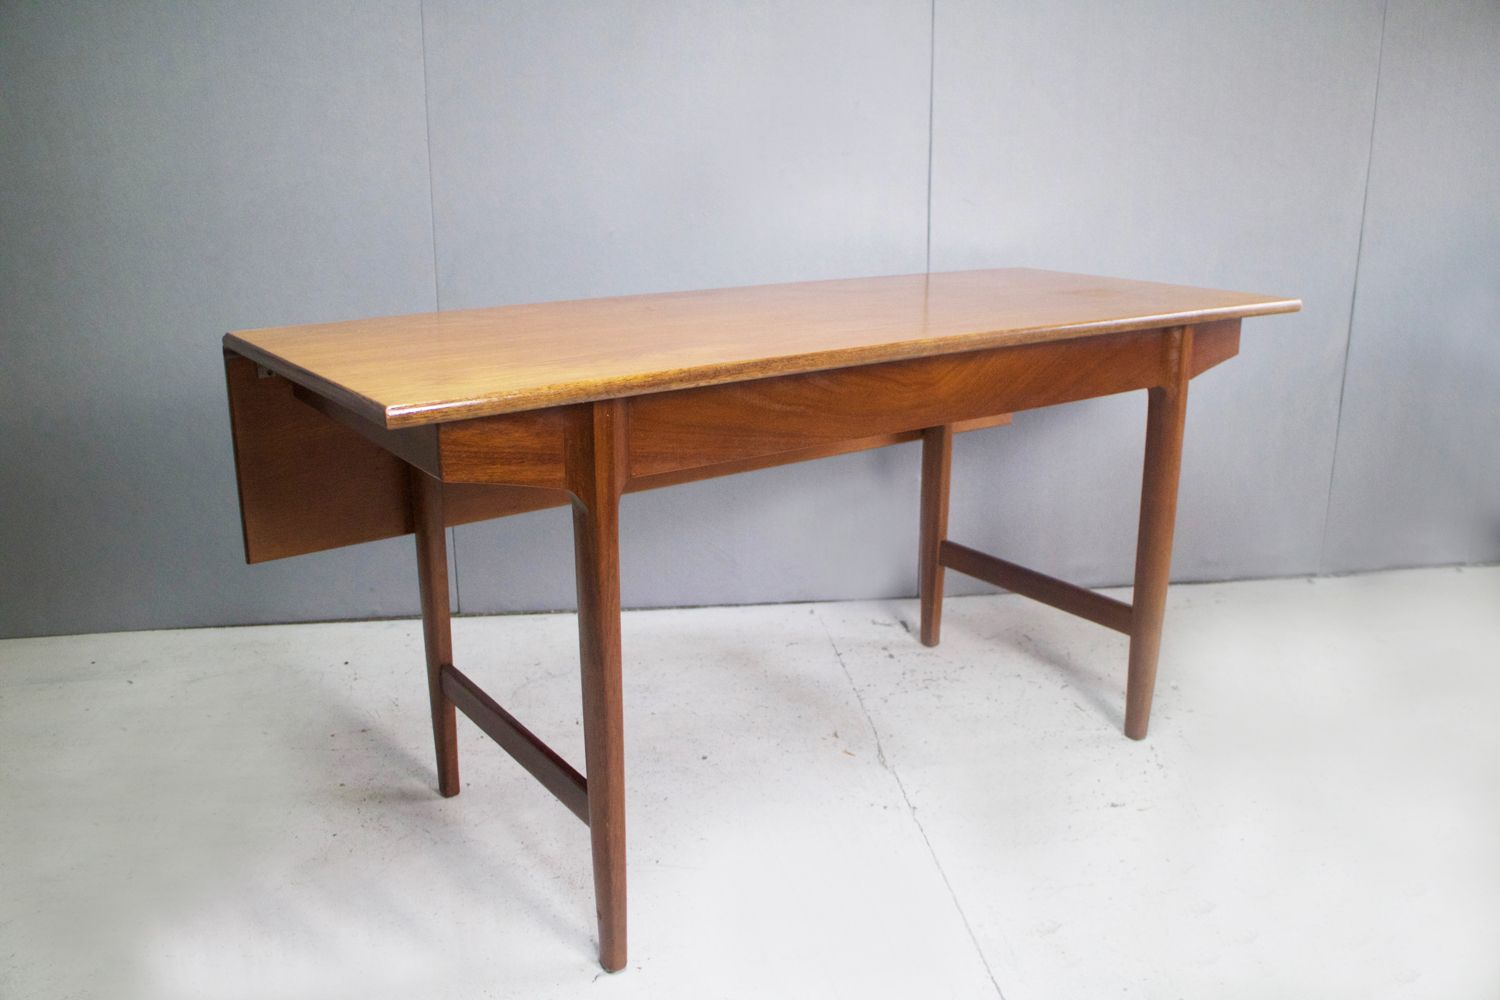 Vintage Drop Leaf Dining Table 1970s bei Pamono kaufen : vintage drop leaf dining table 1970s 4 from www.pamono.at size 1500 x 1000 jpeg 674kB